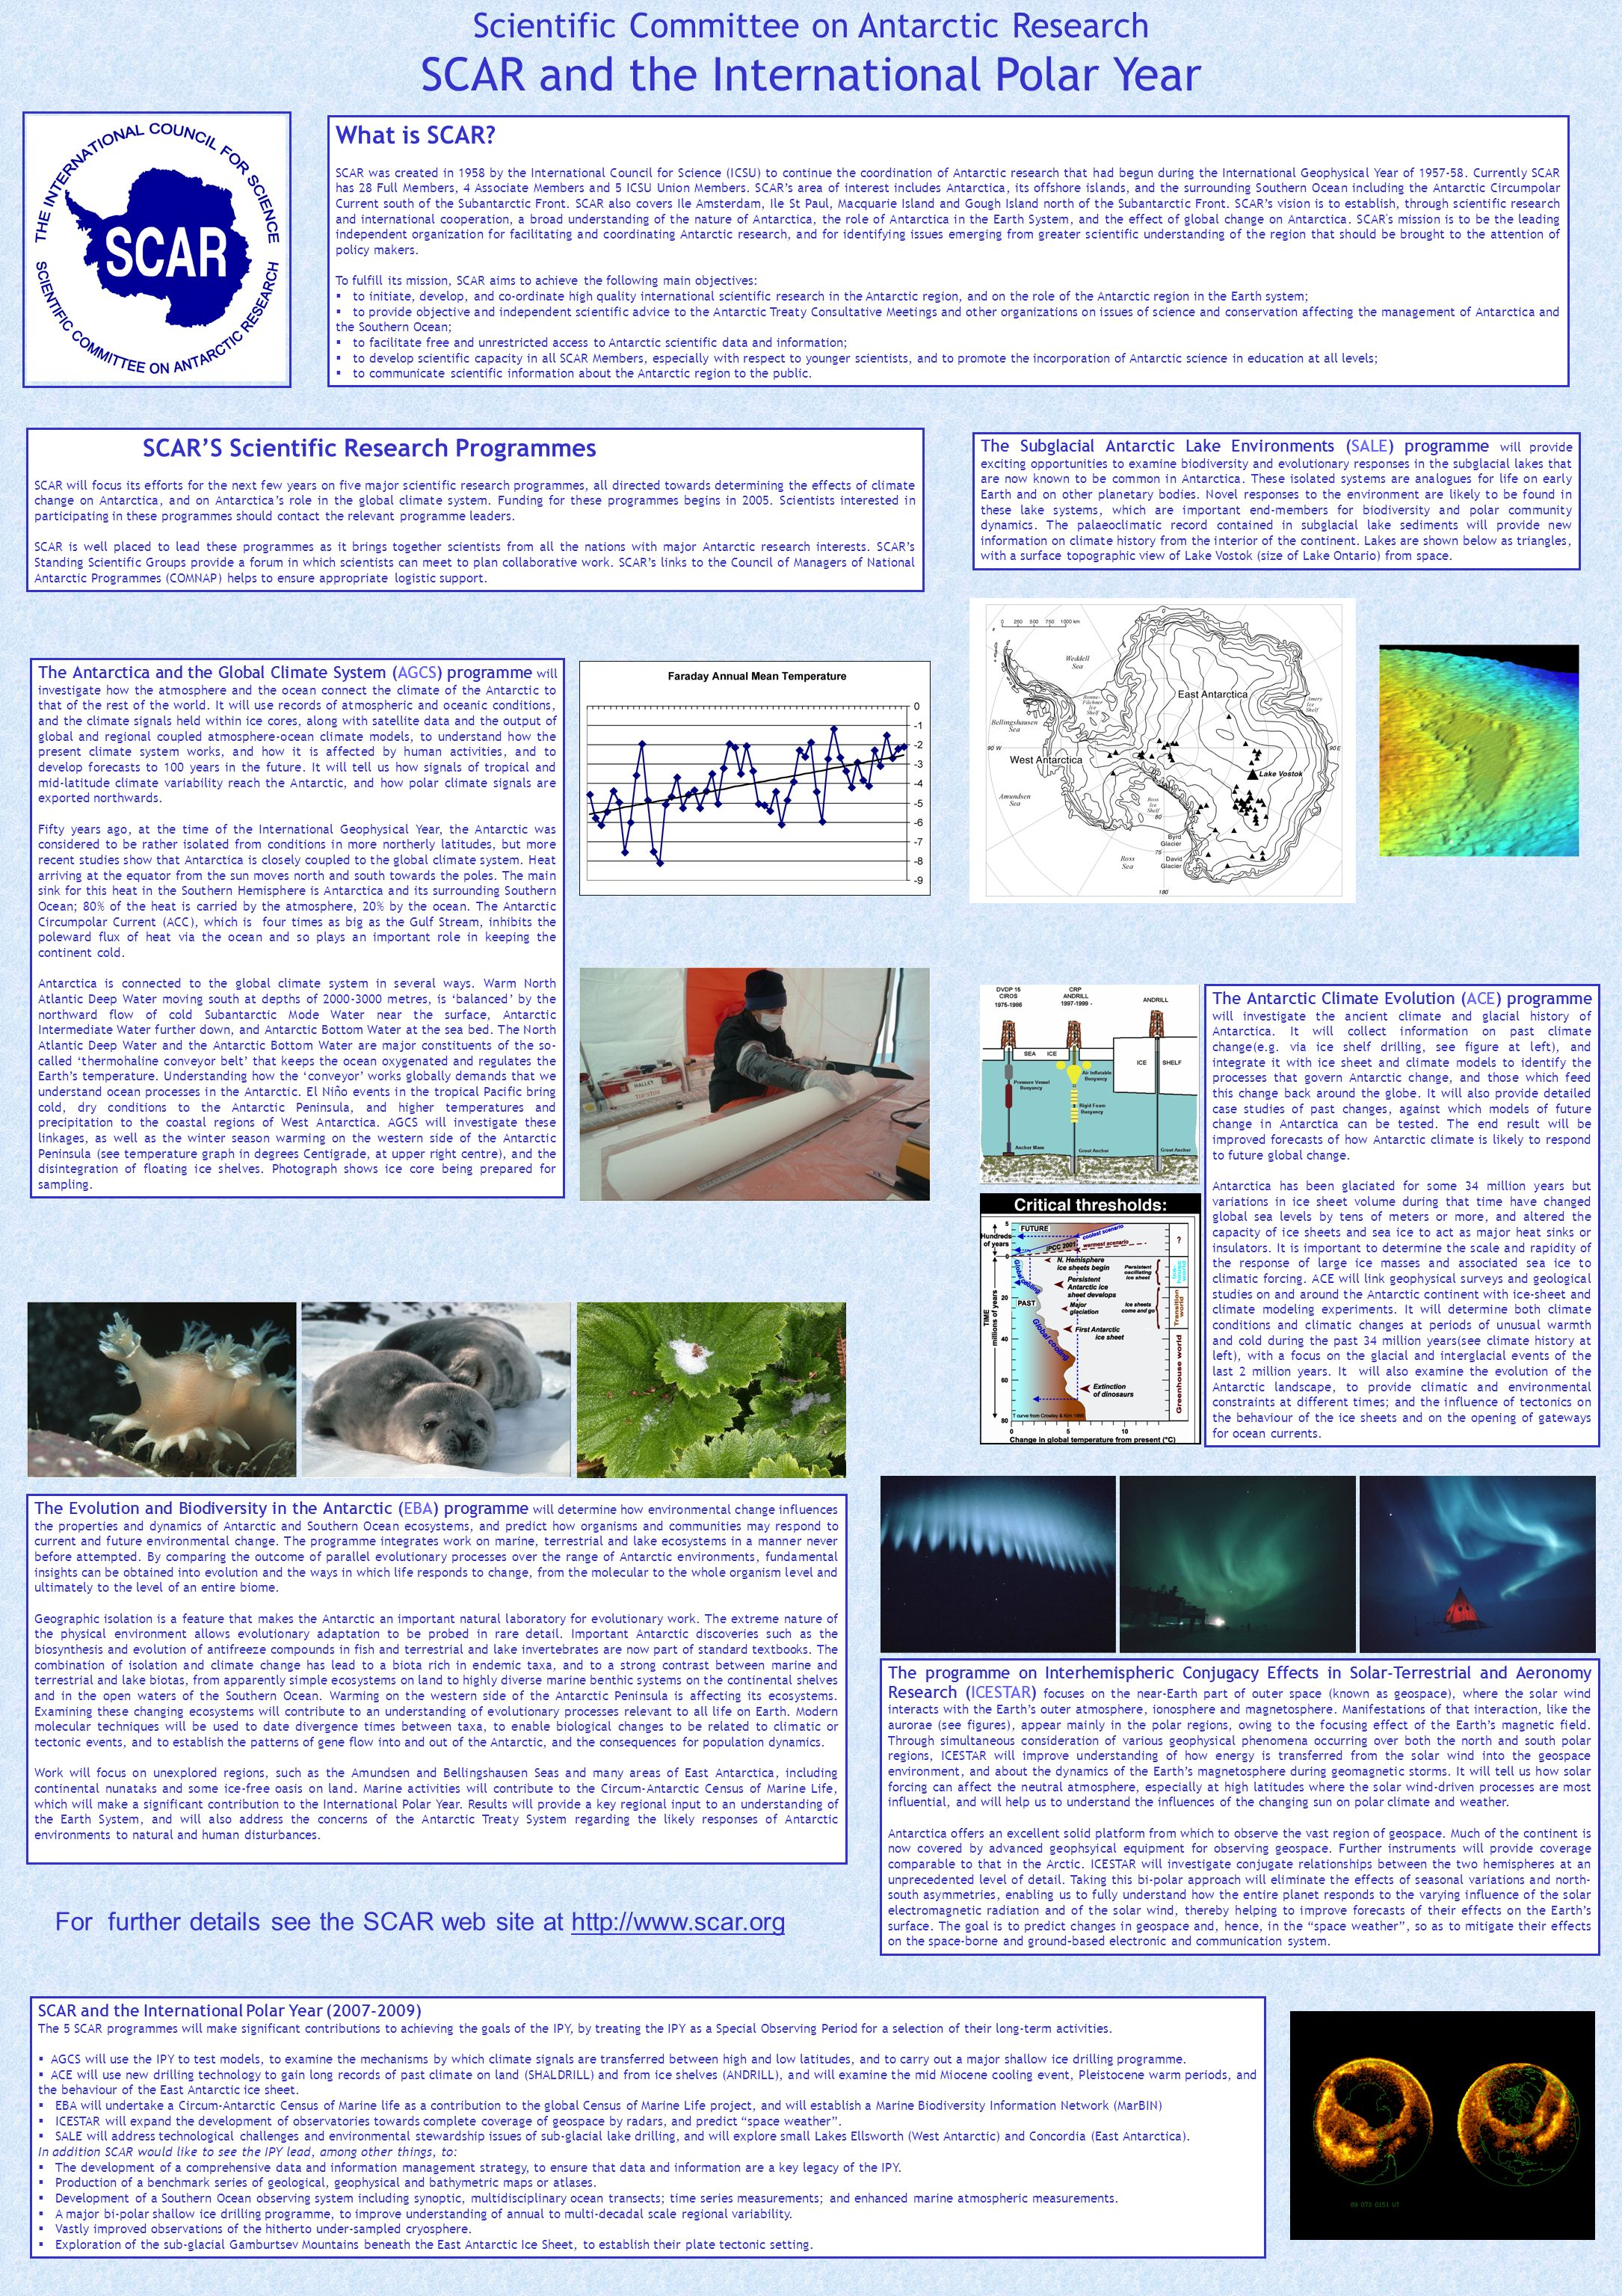 Scientific Committee on Antarctic Research SCAR and the International Polar Year What is SCAR.